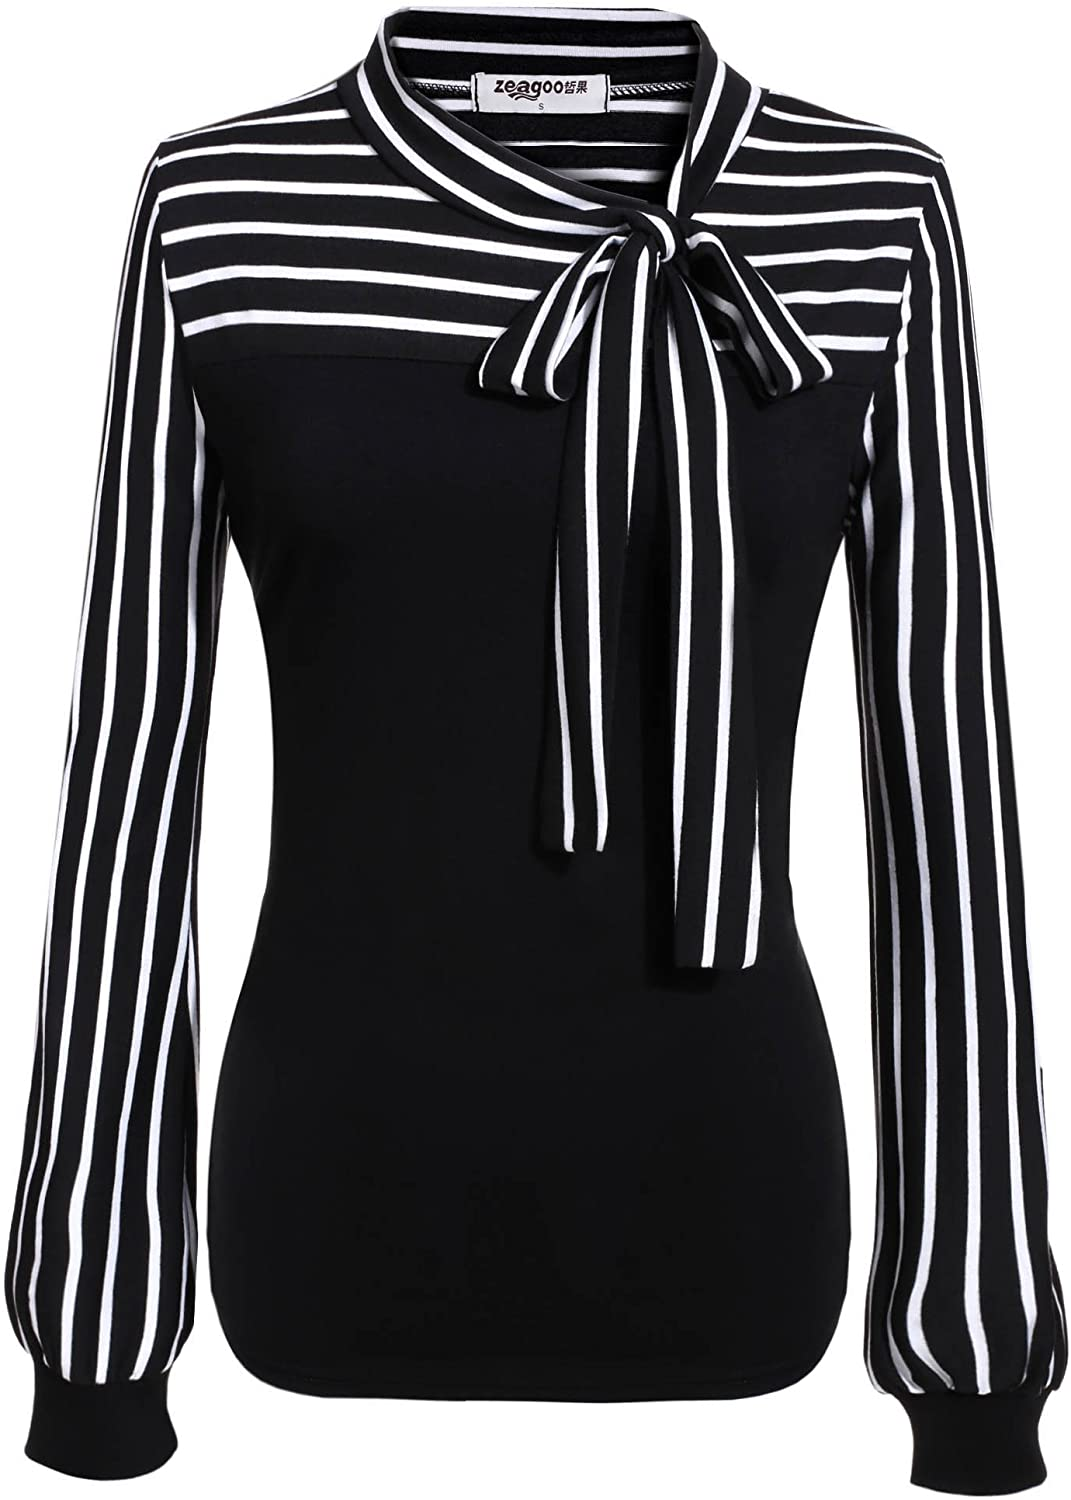 Women's Tie-Bow Neck Striped Blouse Long Sleeve Shirt Office Work Splicing Blouse Shirts Tops